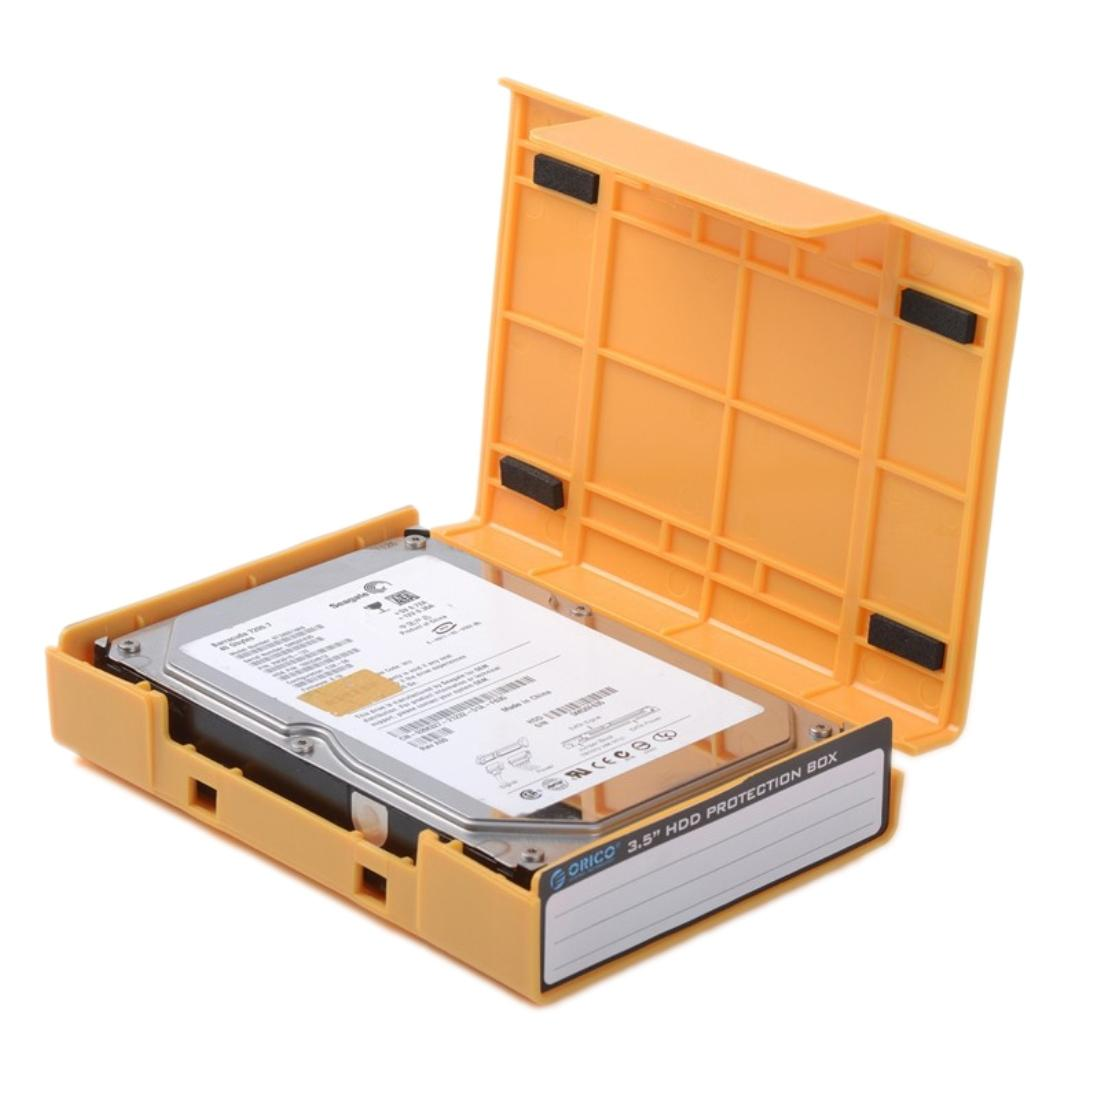 The Price Of Dual Layer 2 5 Inch Ide Sata Hdd Hard Drive Storage Box Orico Phd 25 25inch And Gadget Protector Php 35 Case Disk Protect Cover